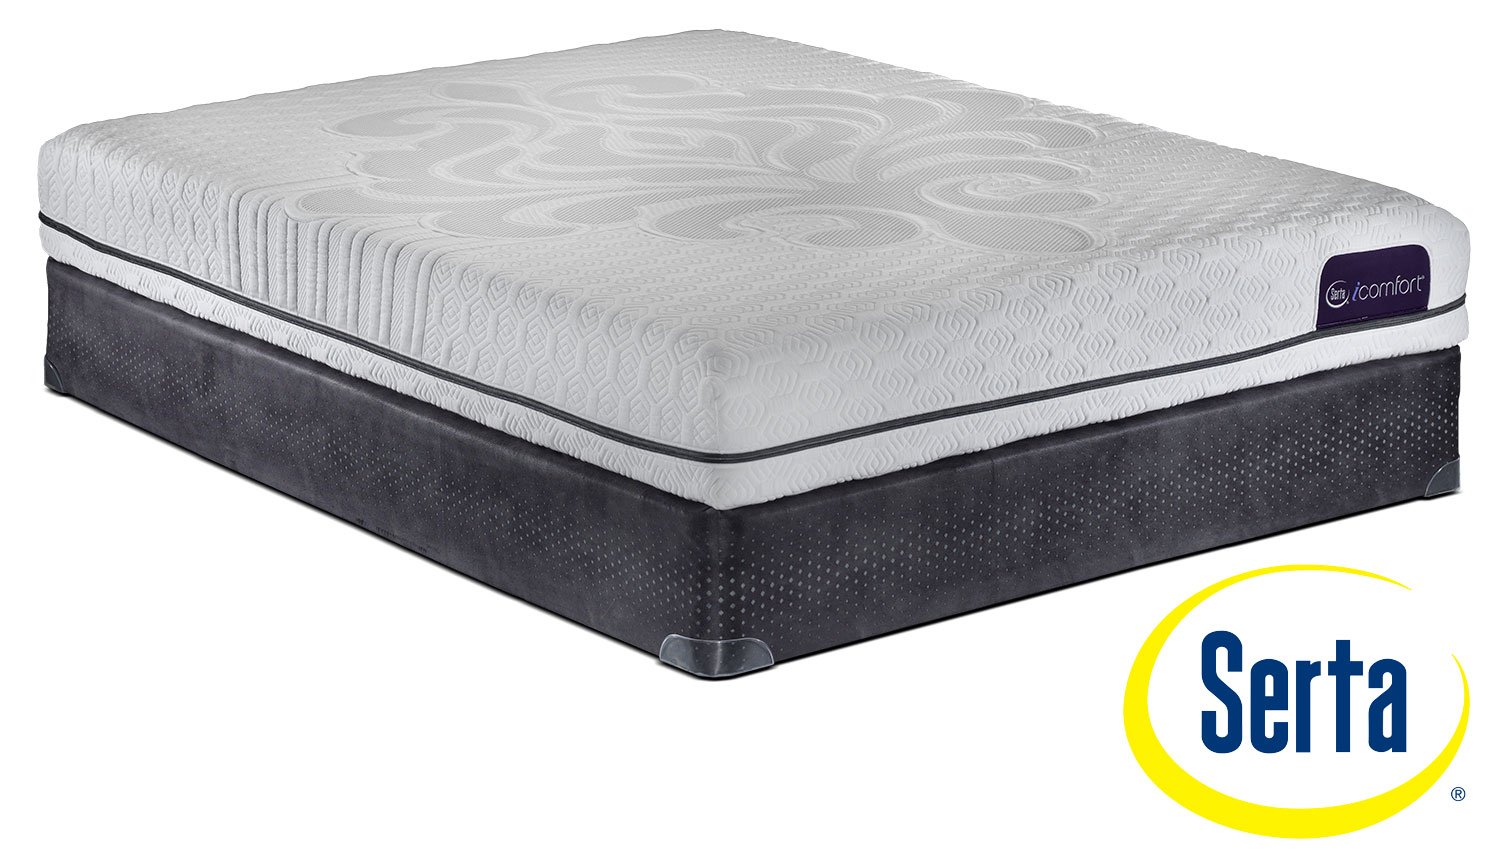 Mattresses and Bedding - Serta iComfort Eco Levity Firm Queen Mattress and Boxspring Set